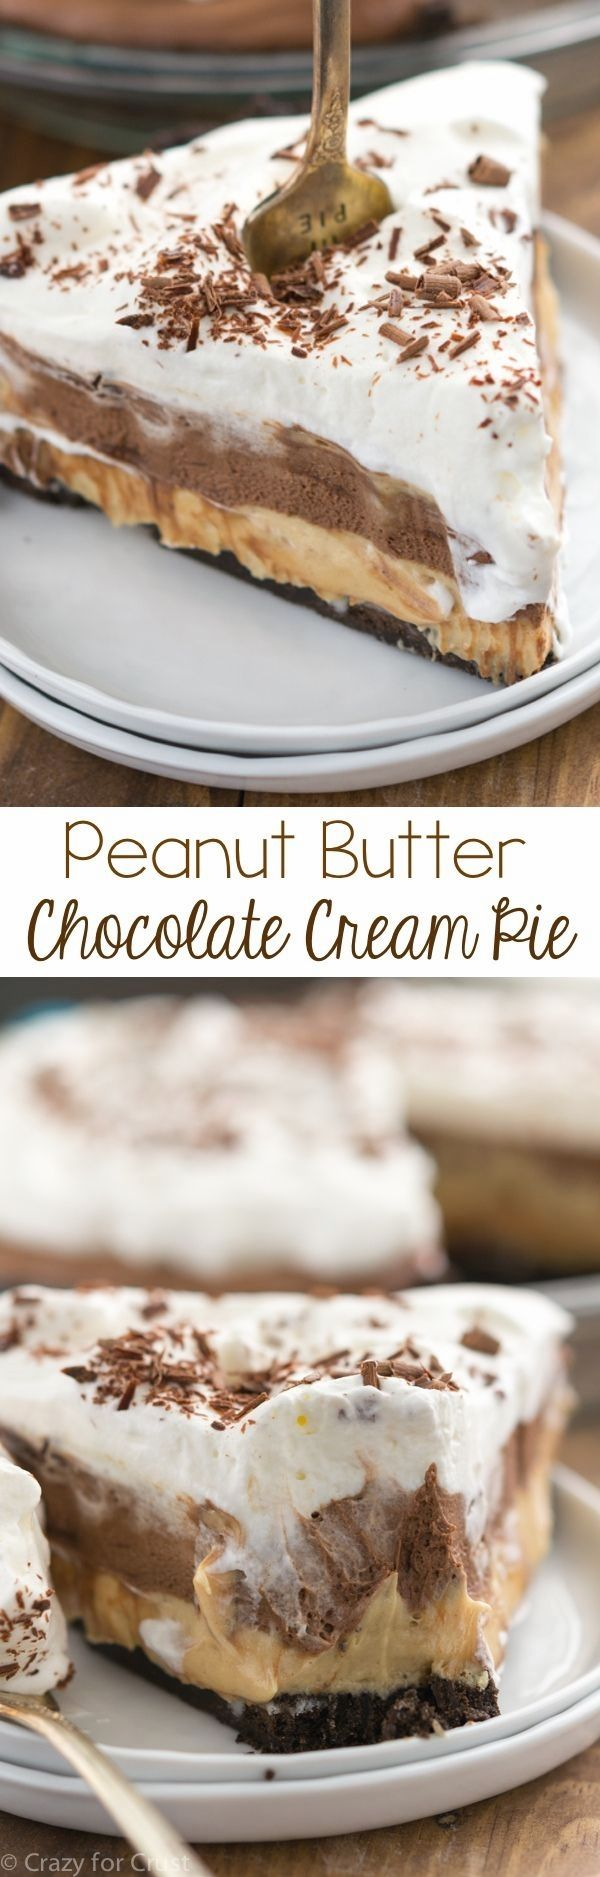 Layers of Oreo crust, peanut butter, and chocolate cream pair perfectly for the best pie I've ever eaten! The best part is it's totally no bake and egg-free!